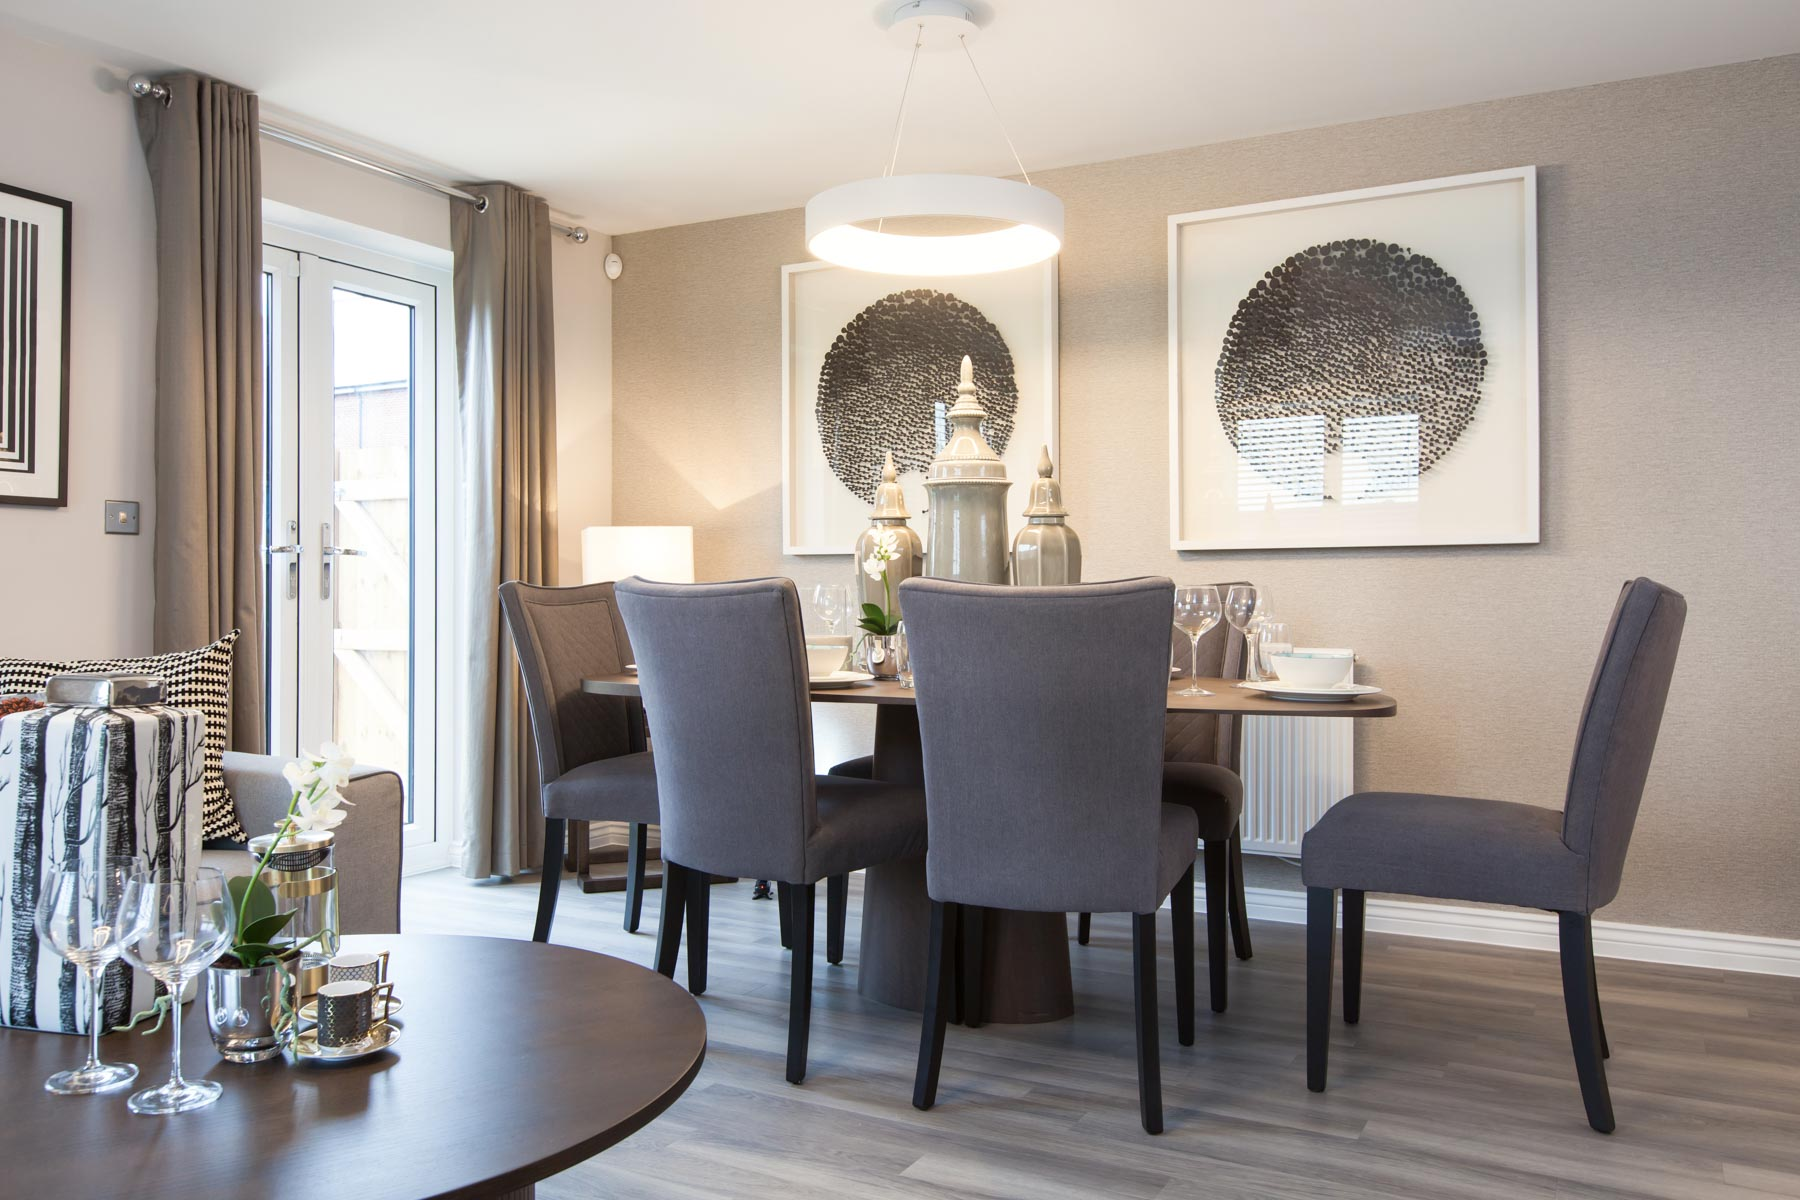 TW Exeter - Sherford - The Danbury example living room